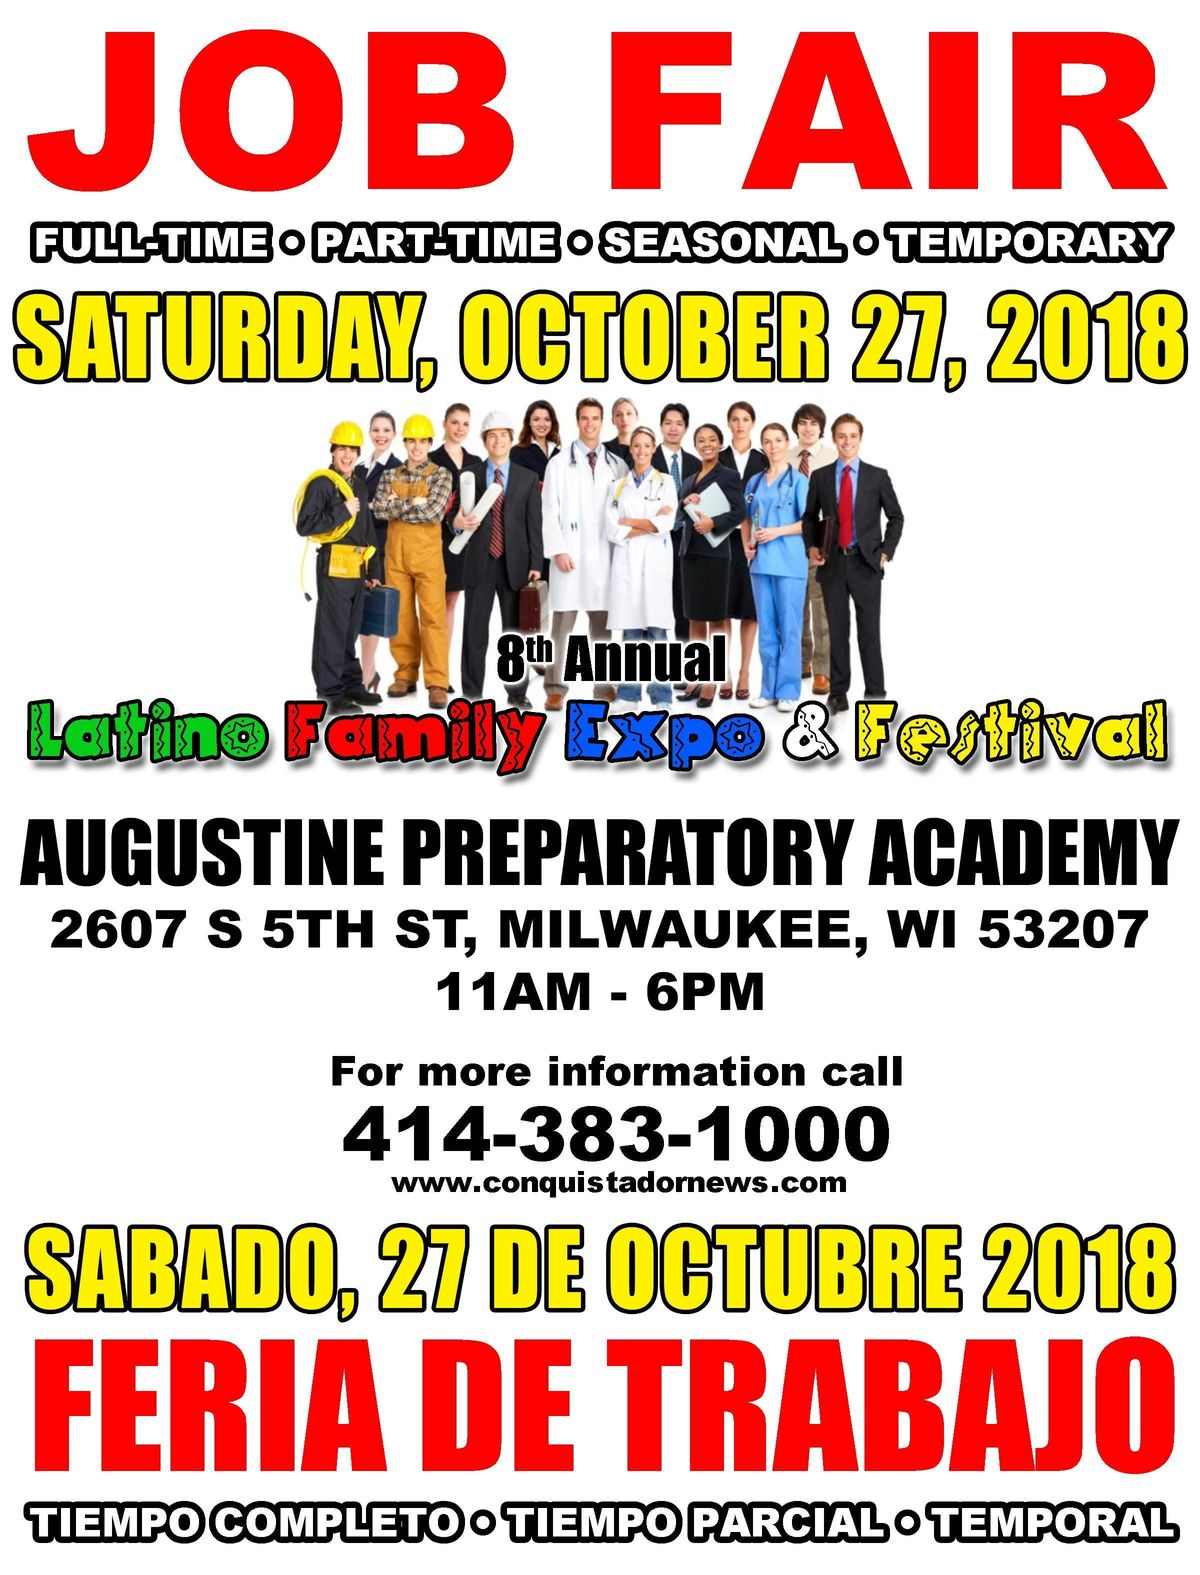 Job Fair At Augustine Preparatory Academy Milwaukee